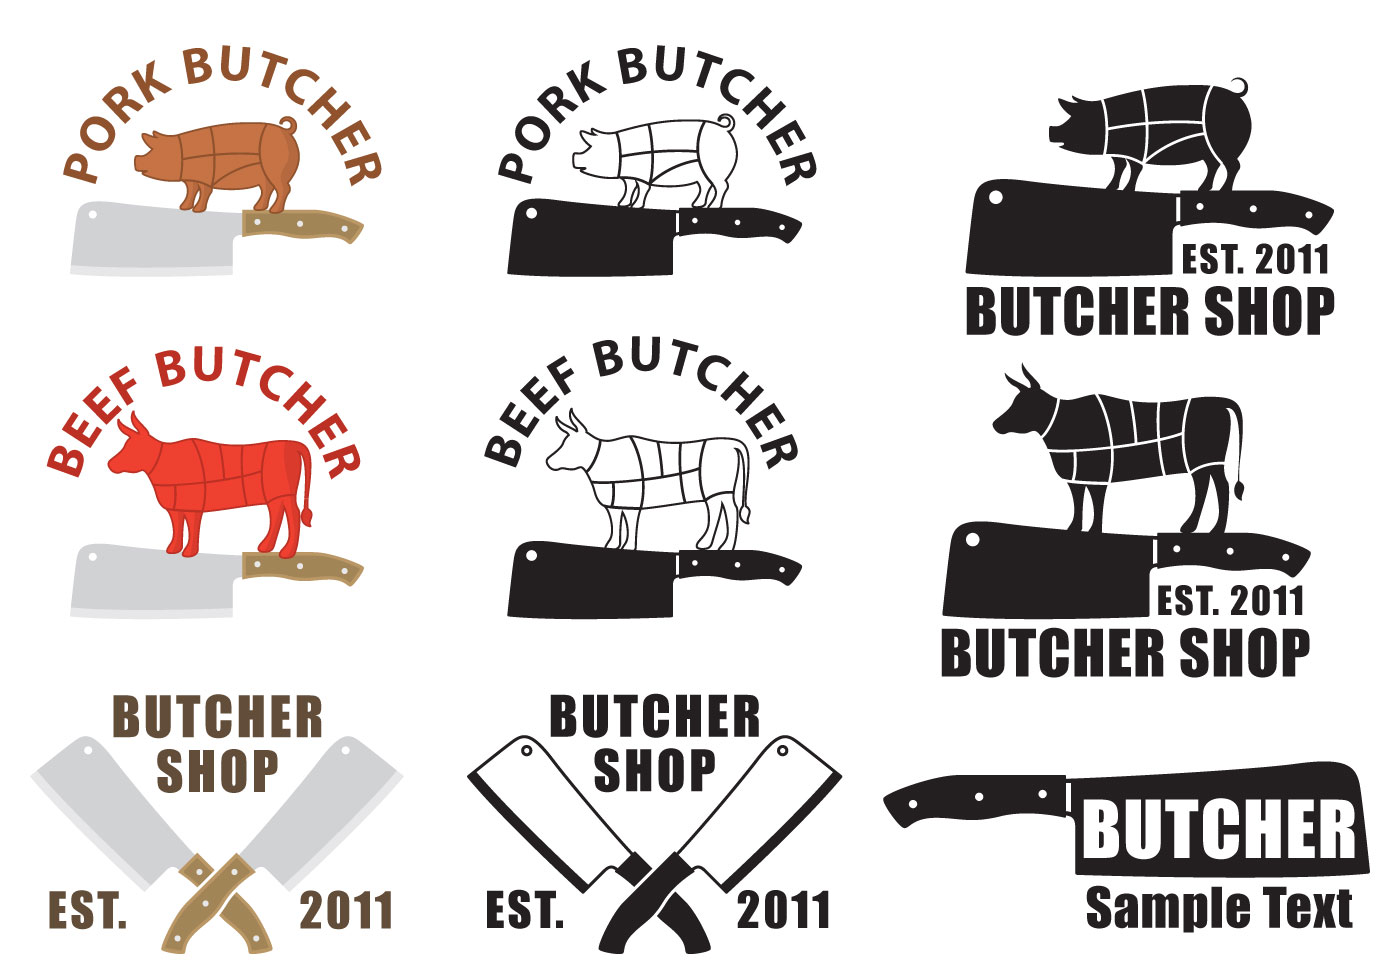 butcher and cleaver logos download free vector art